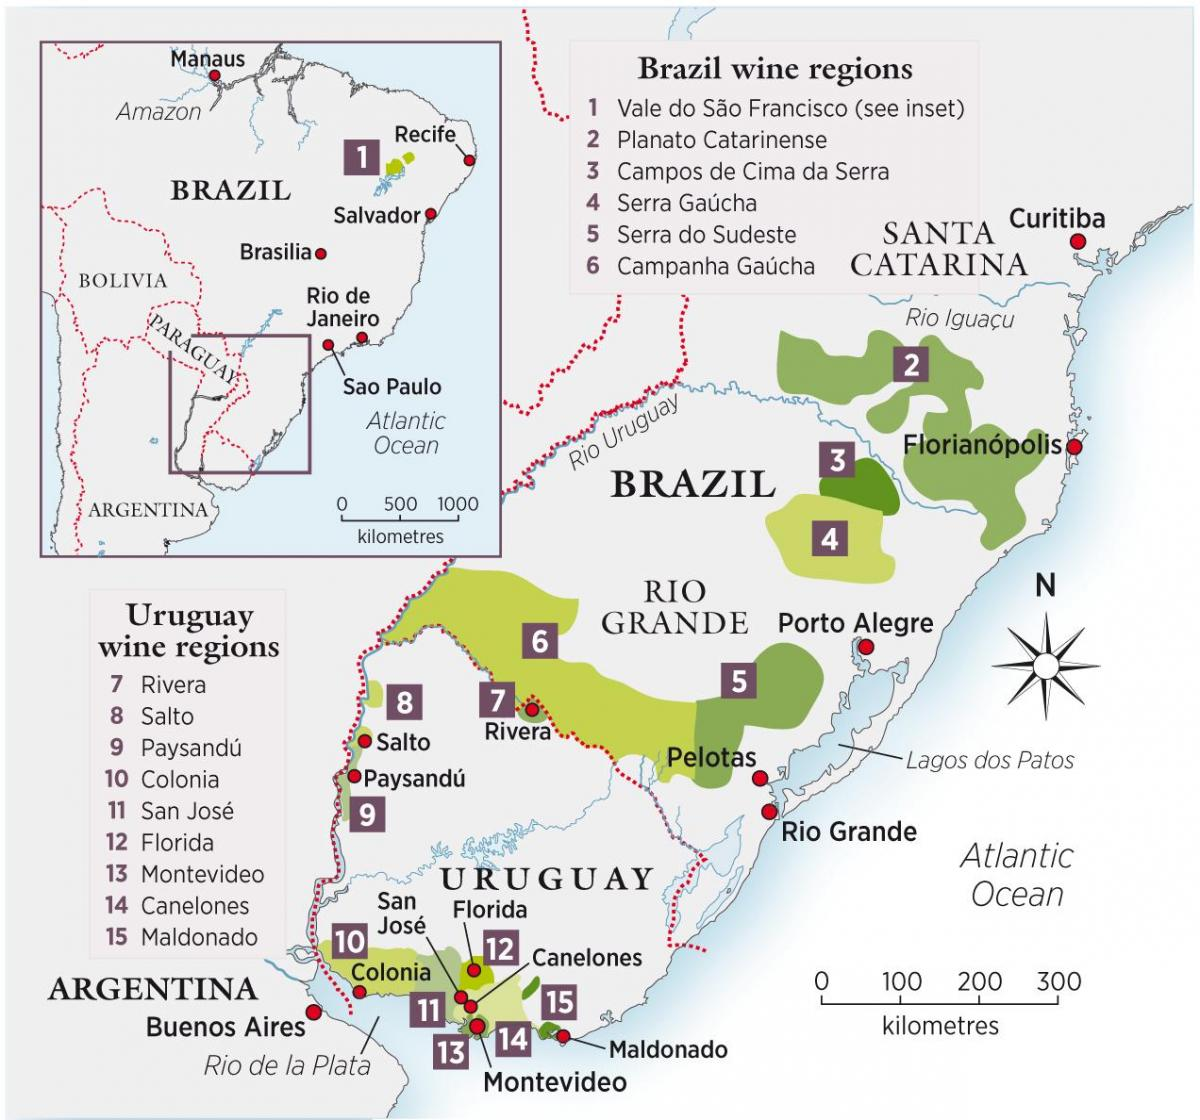 Map of Uruguay wine